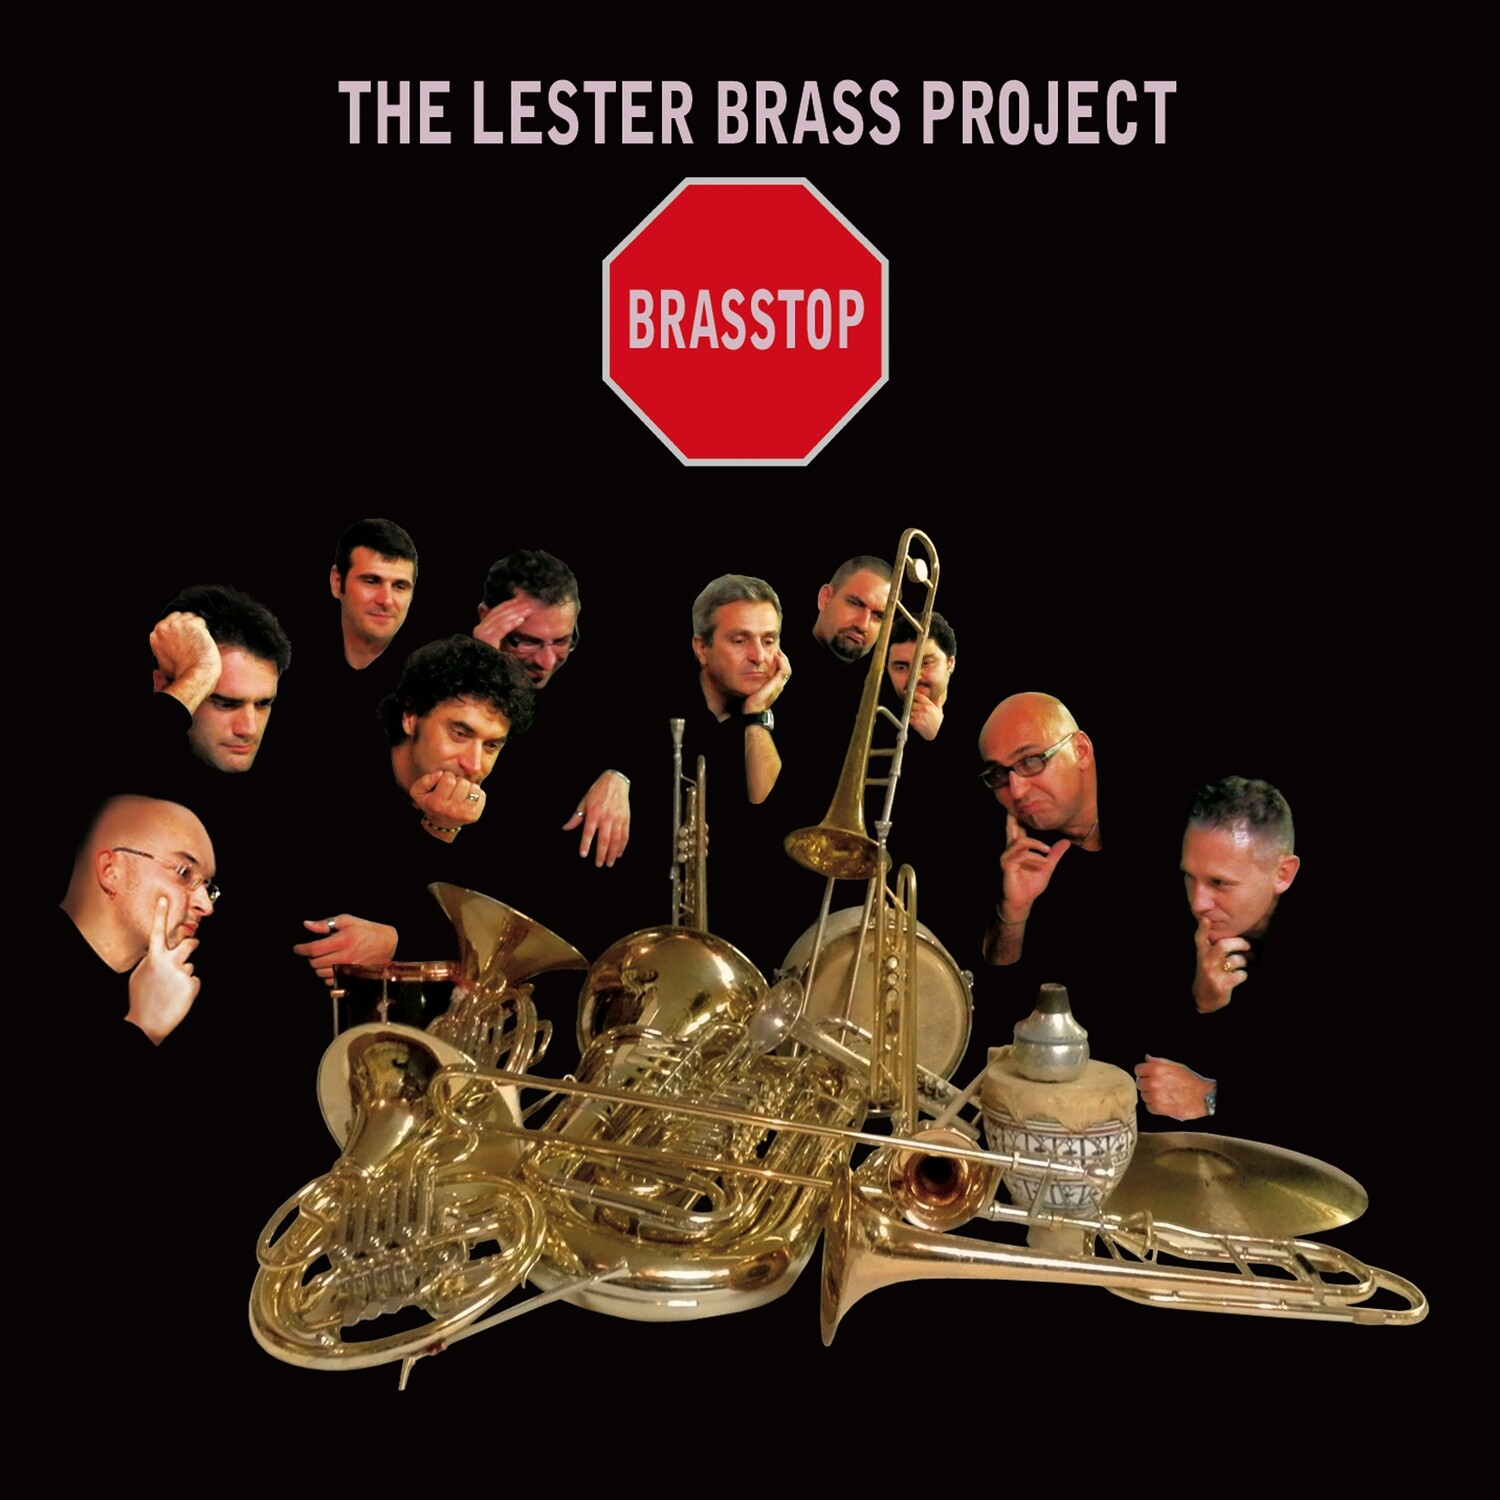 THE LESTER BRASS PROJECT «Brasstop»